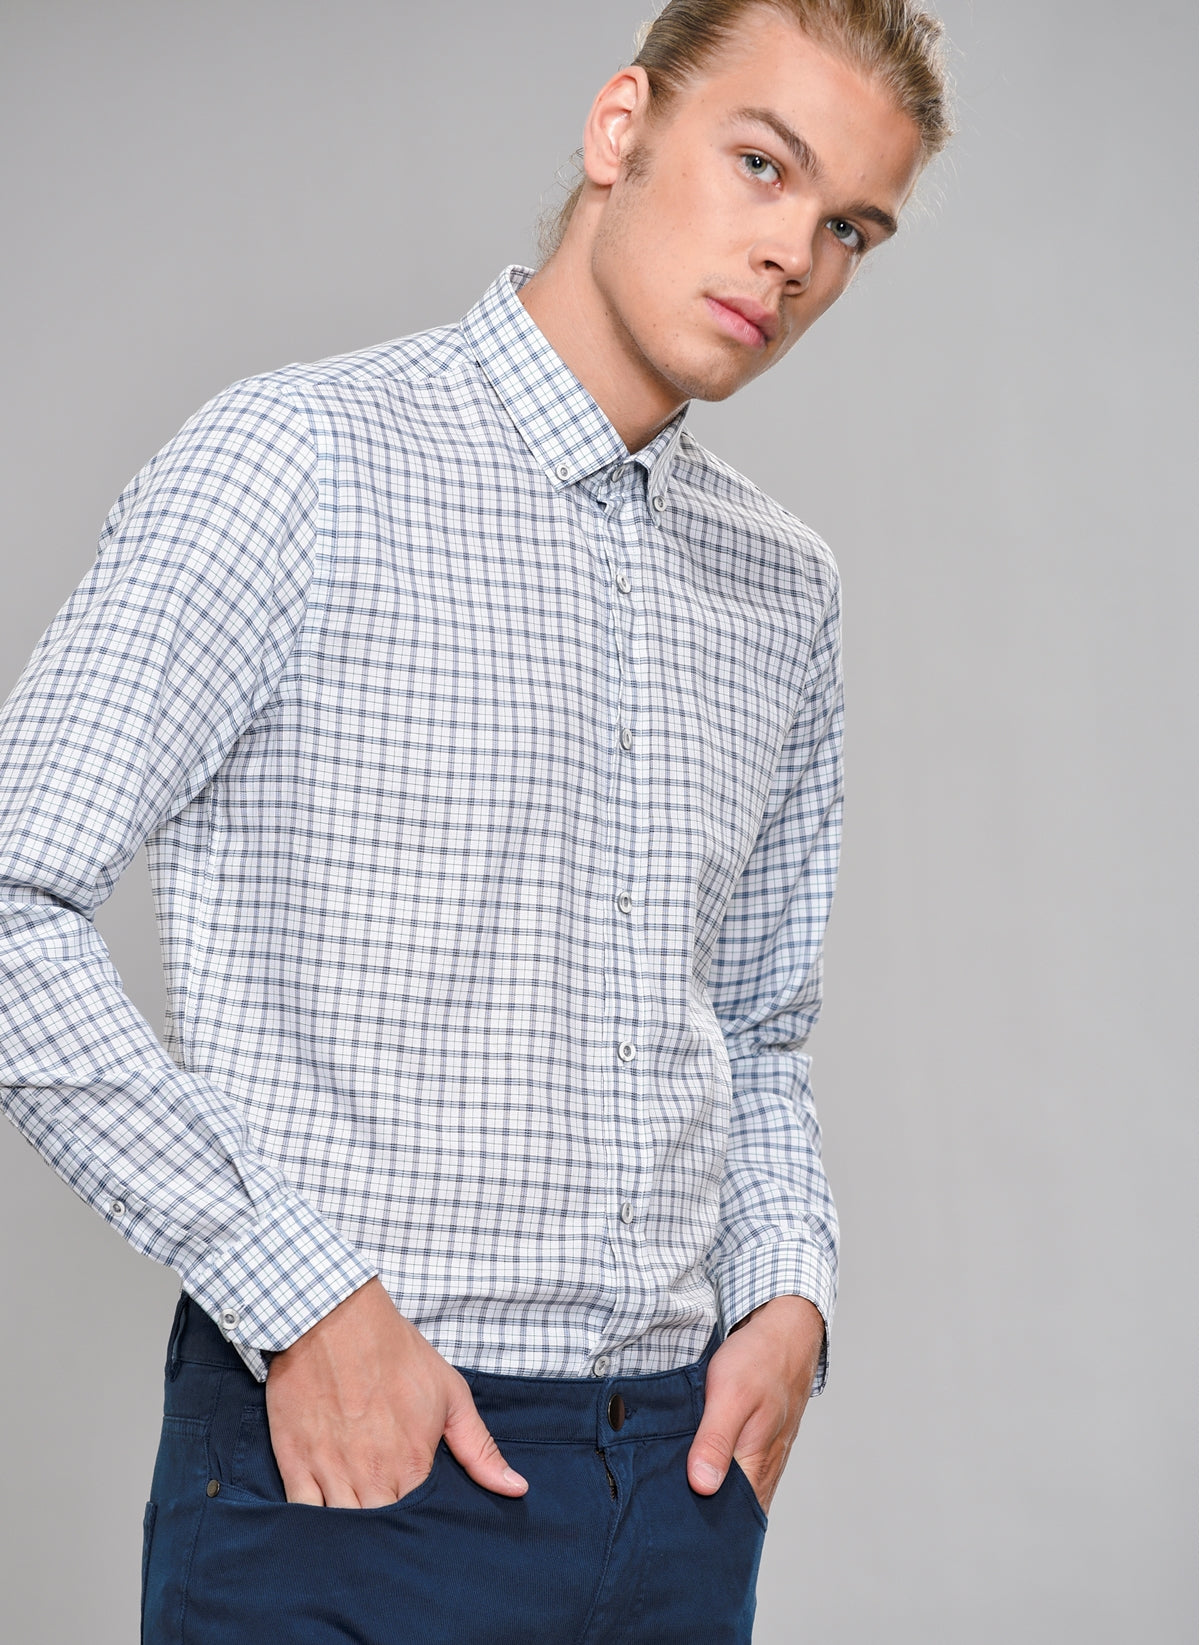 Tartan Button-Down Shirt in Navy